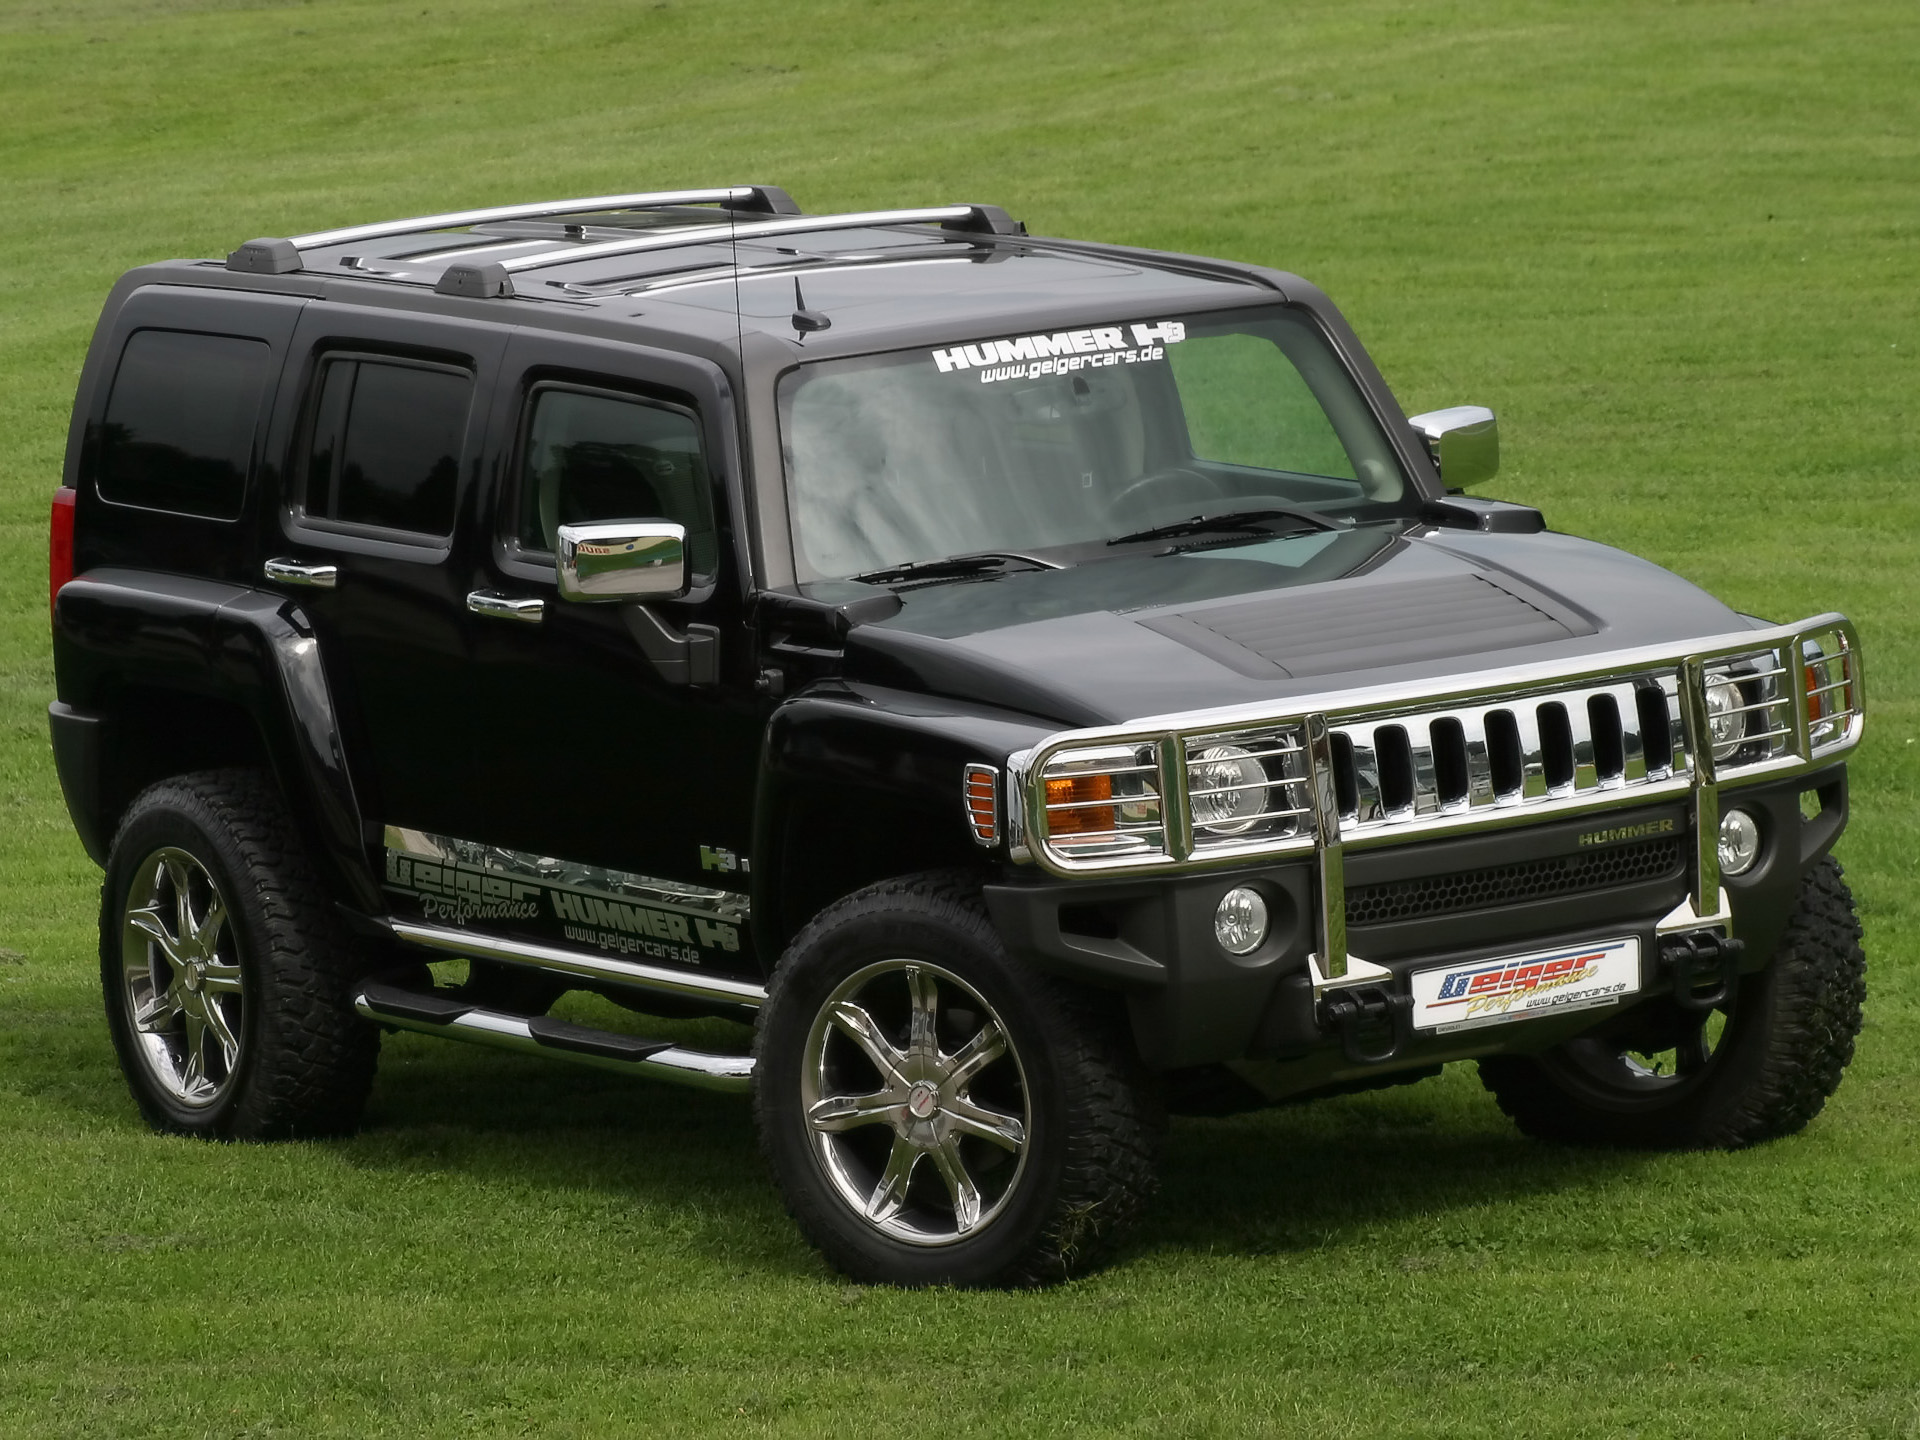 Geigercars Hummer H3 photos Gallery with 2 pics CarsBase